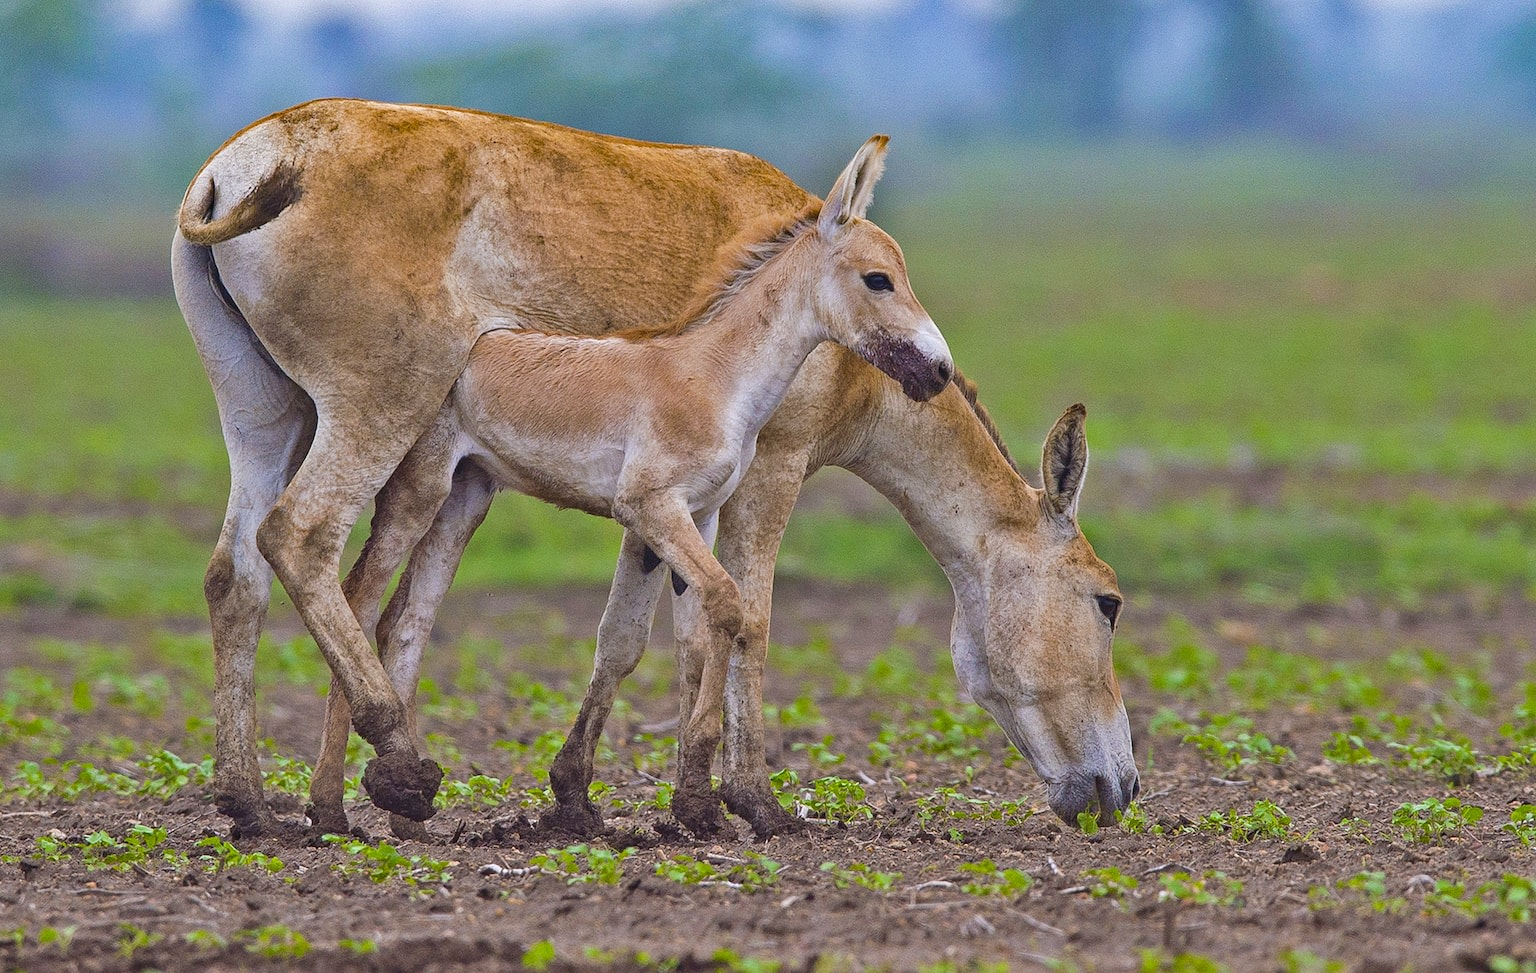 "Like with most animals, khurs breed when food is plentiful in their habitat. ""Breeding is a seasonal activity occurring predominantly during monsoon,"" reports the studbook. It goes on to say that males protect territories based on their dominance hierarchy, ""so males higher up in the hierarchy tend to have better habitat conditions in their territories while subordinate males are relegated to inferior territories."" Females move between territories at this time of year, choosing to mate with males having the best territory."